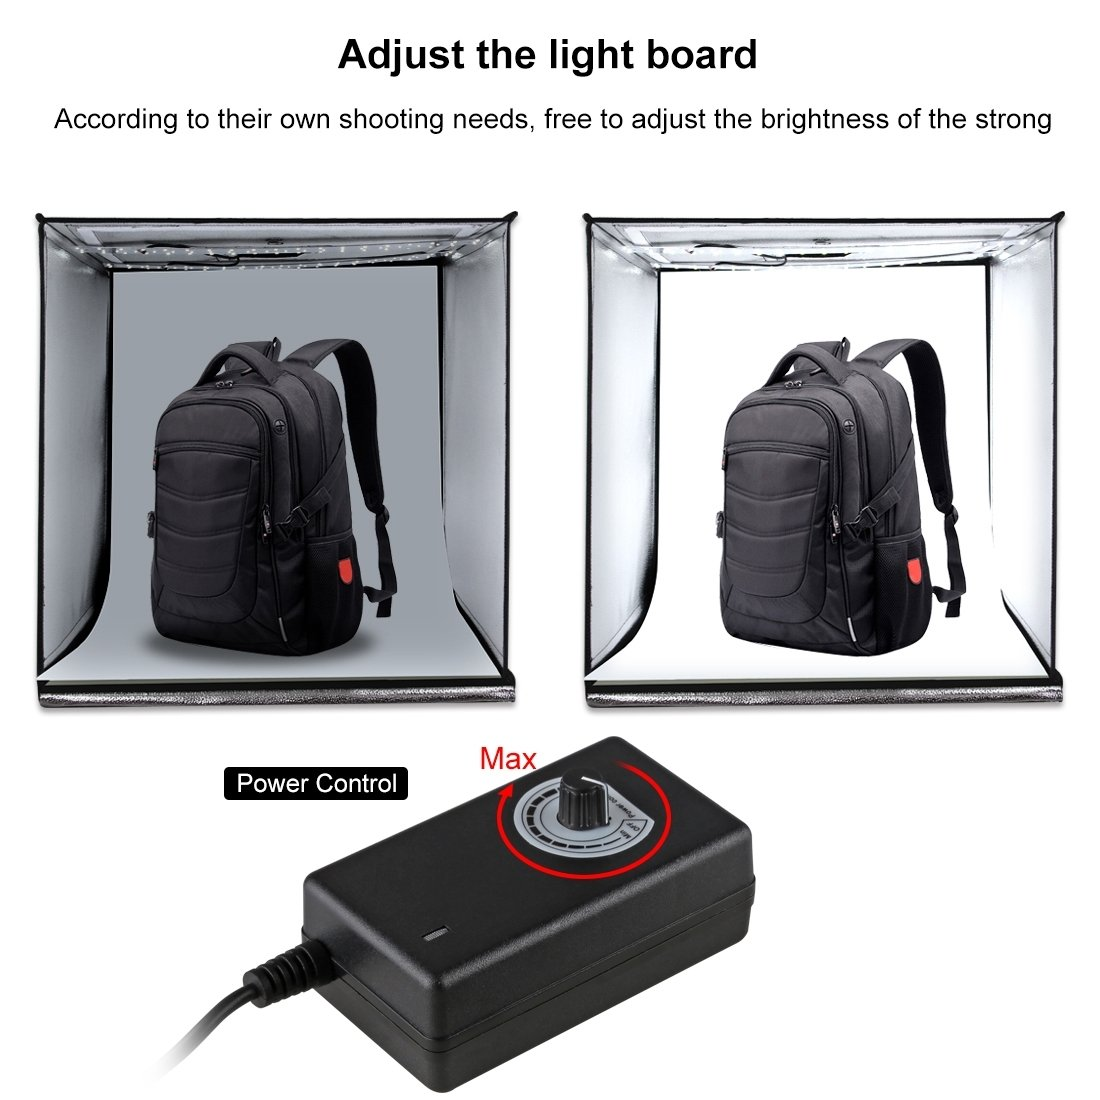 Light Box Photo Studio Super Bright Photography 24'' Portable Shooting Light Tent with 3 Colors Photography Backdrops Waterproof Background Screen & Carrying Bag (24'') by PULUZ (Image #3)